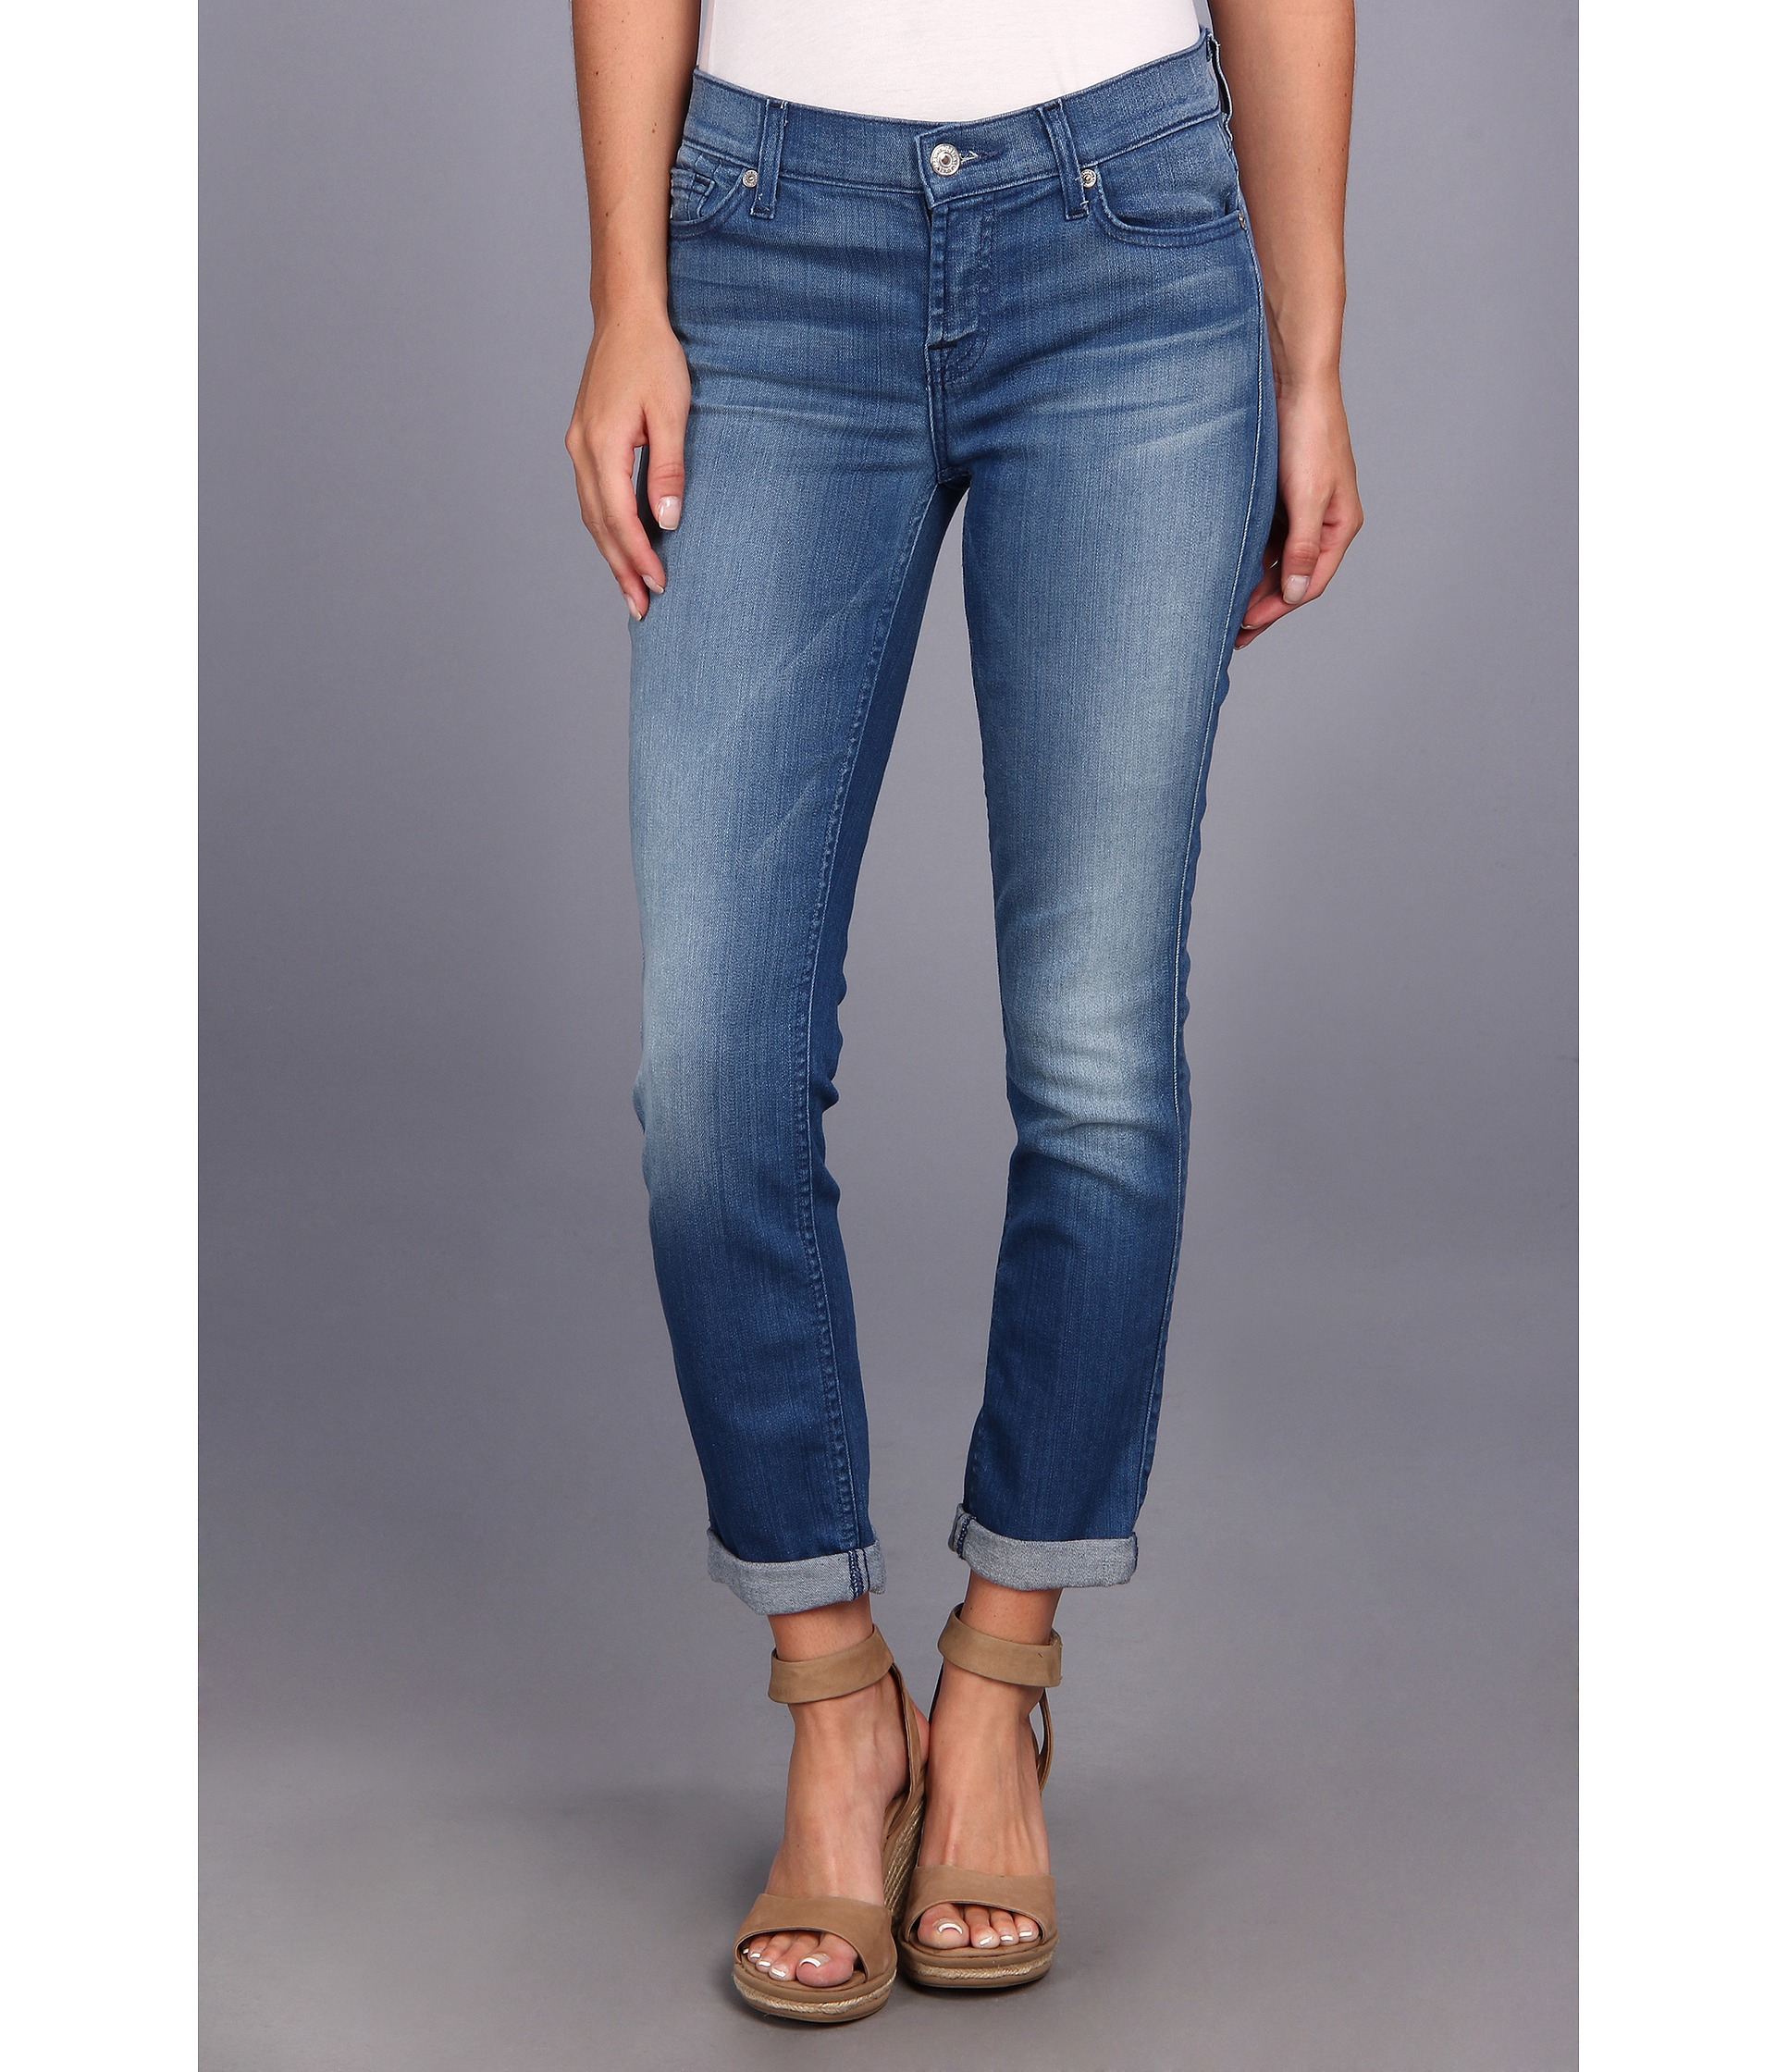 7 for all mankind Skinny Crop and Roll in Slim Illusion Bright ...